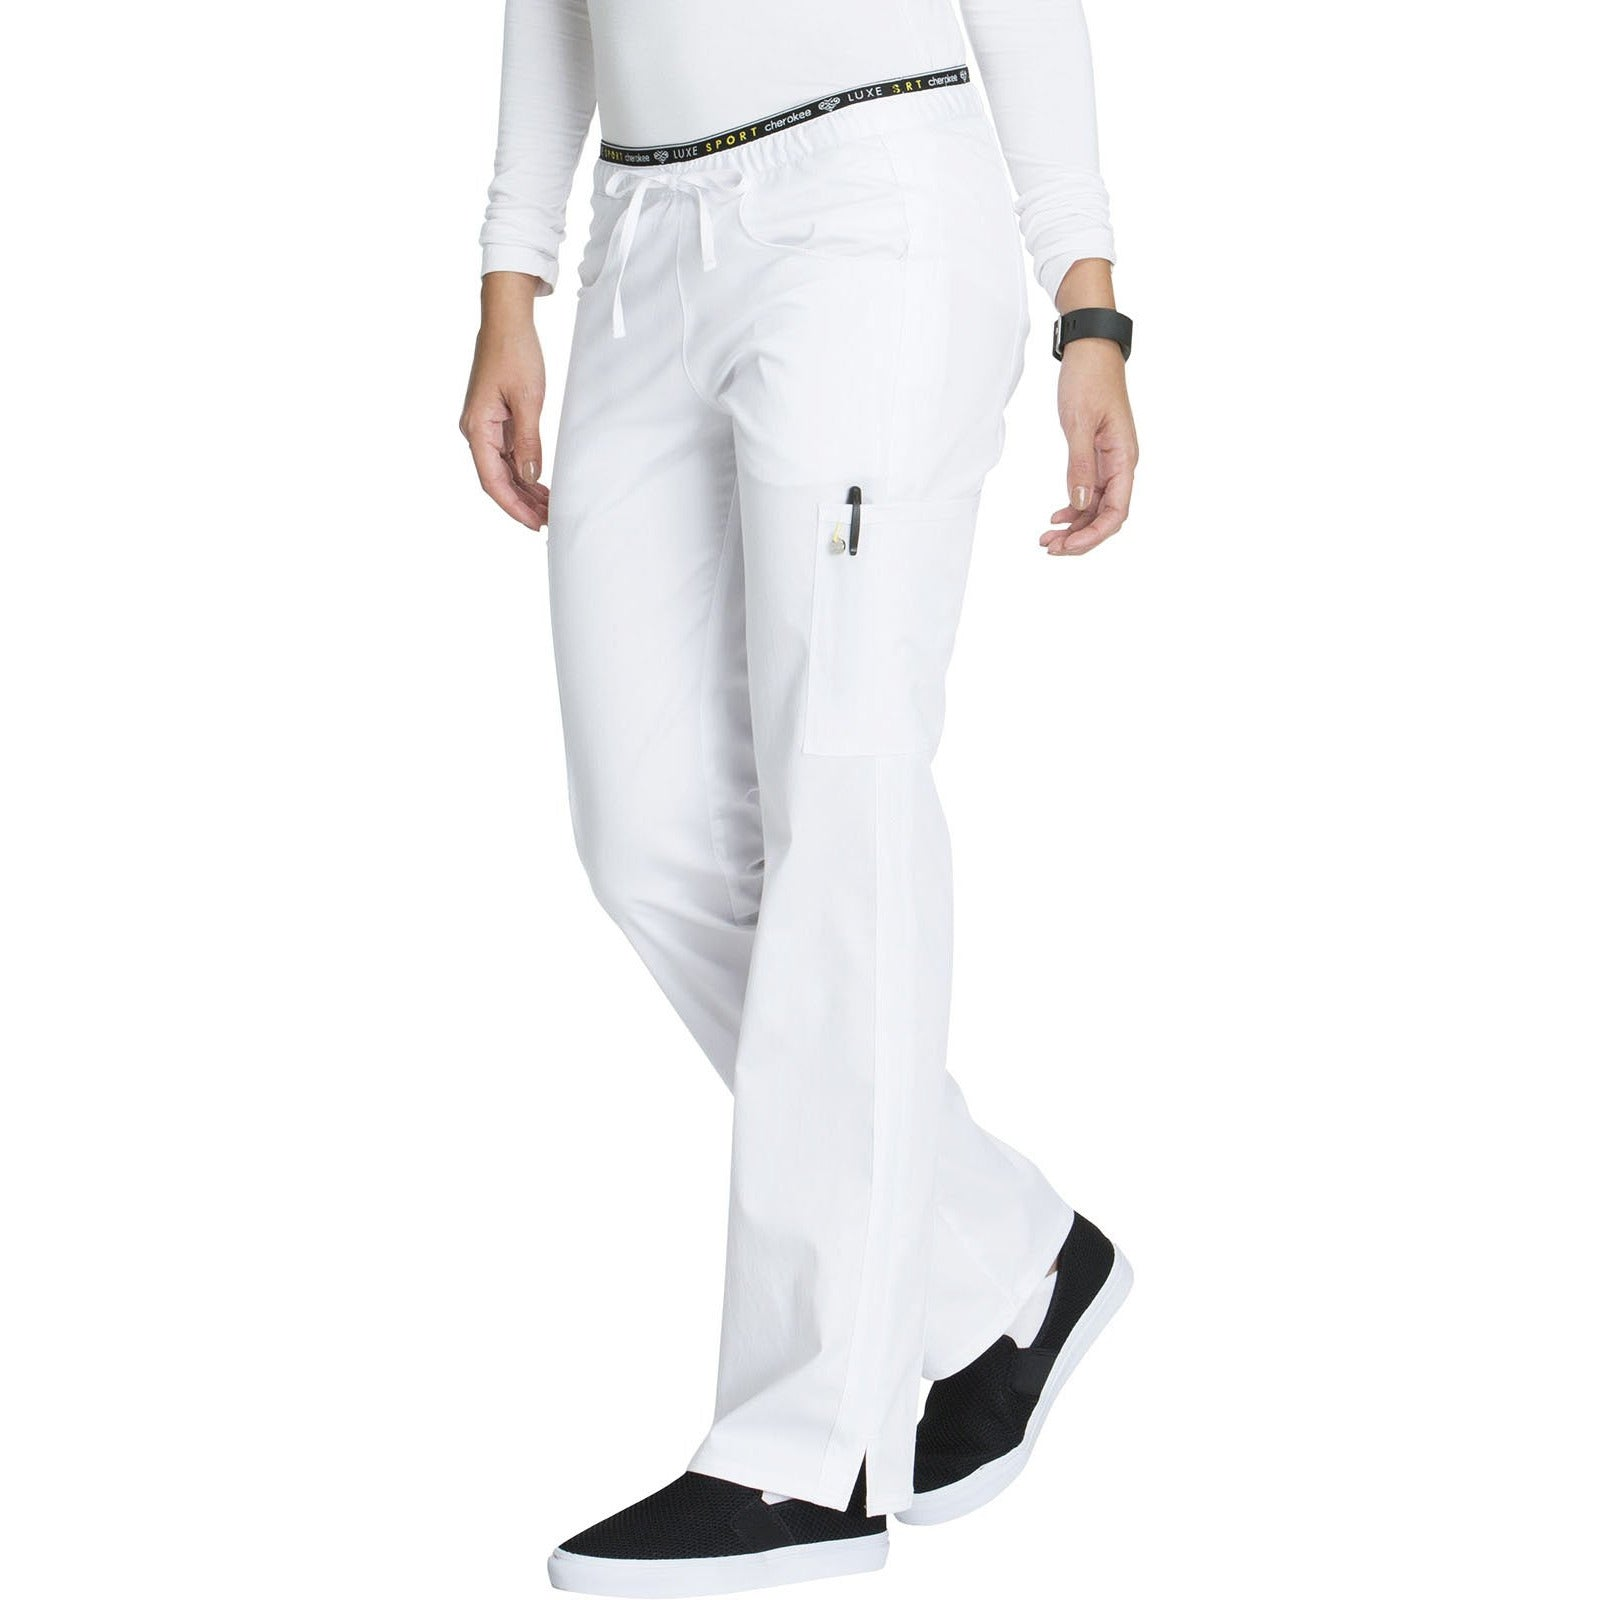 Mid Rise Straight Leg Pull-on Pant CK003P Petite INSEAM 28""